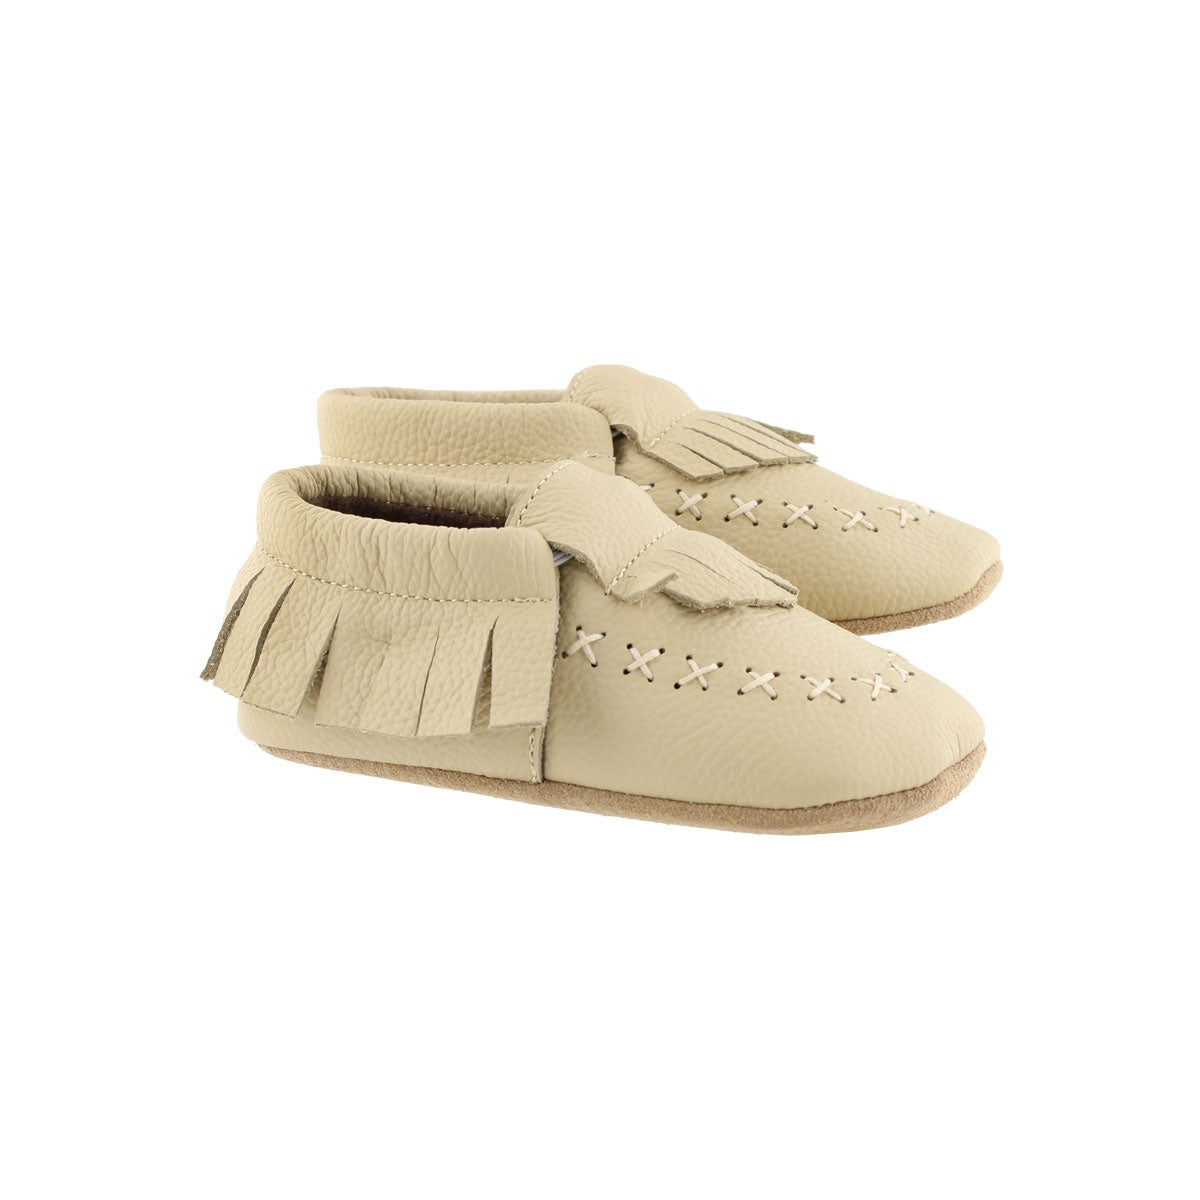 Infs-g Smoccey snd slipper bootie